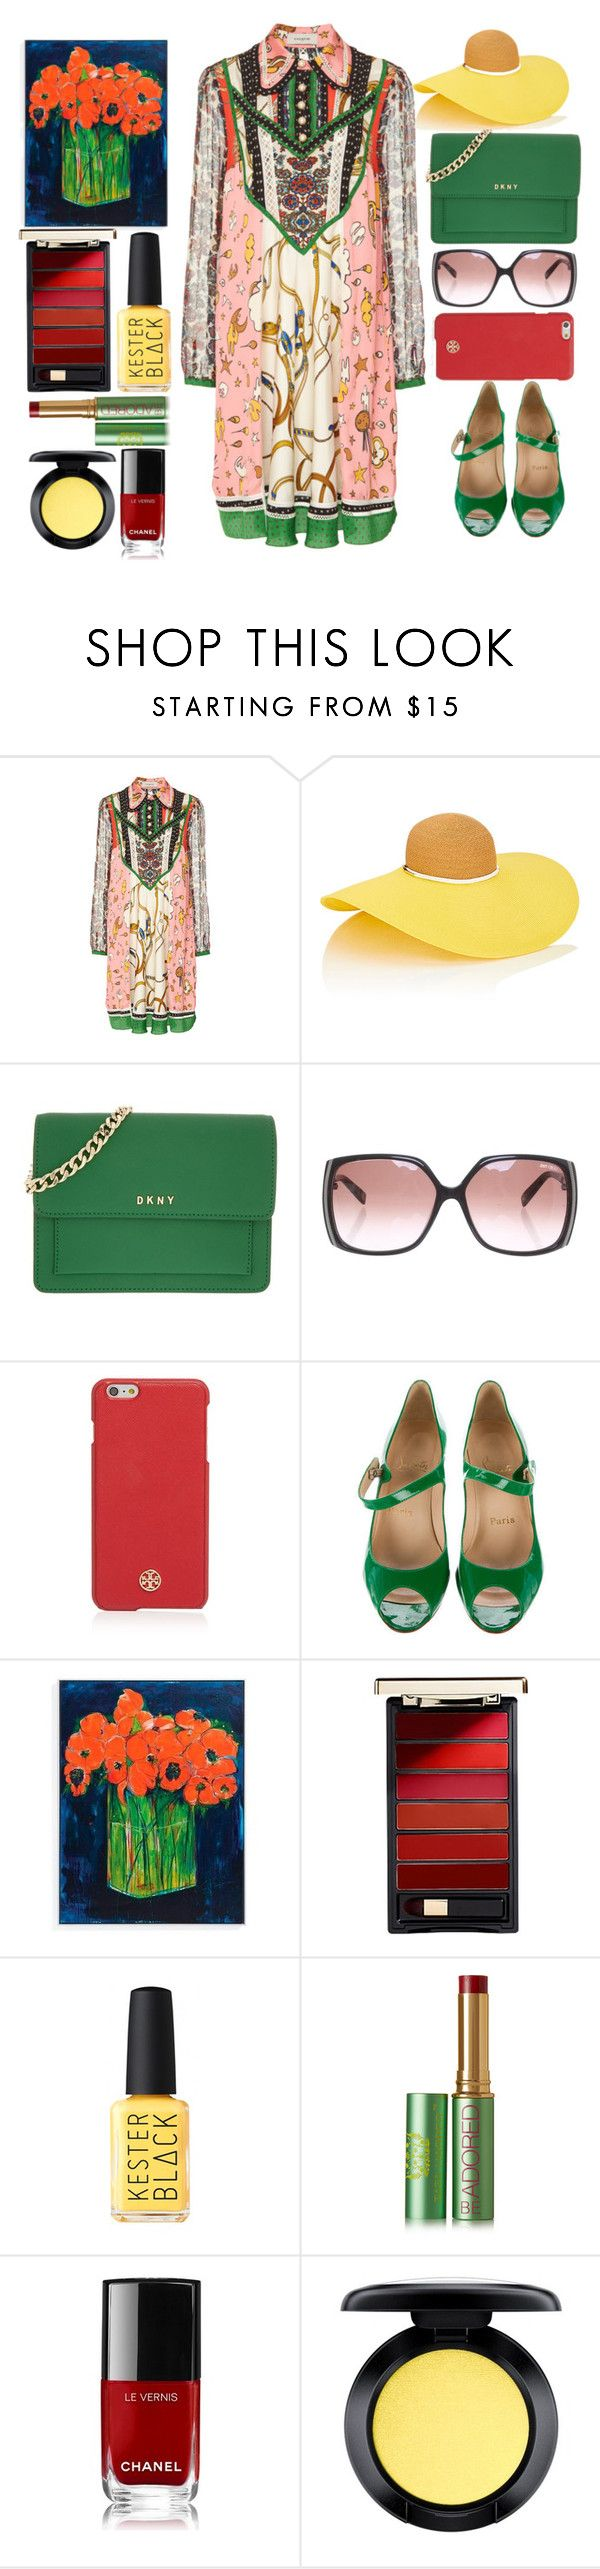 """Gucci dress"" by juliehalloran ❤ liked on Polyvore featuring Eugenia Kim, DKNY, Jimmy Choo, Tory Burch, Christian Louboutin, Grandin Road, L'Oréal Paris, Kester Black, Tata Harper and Chanel"